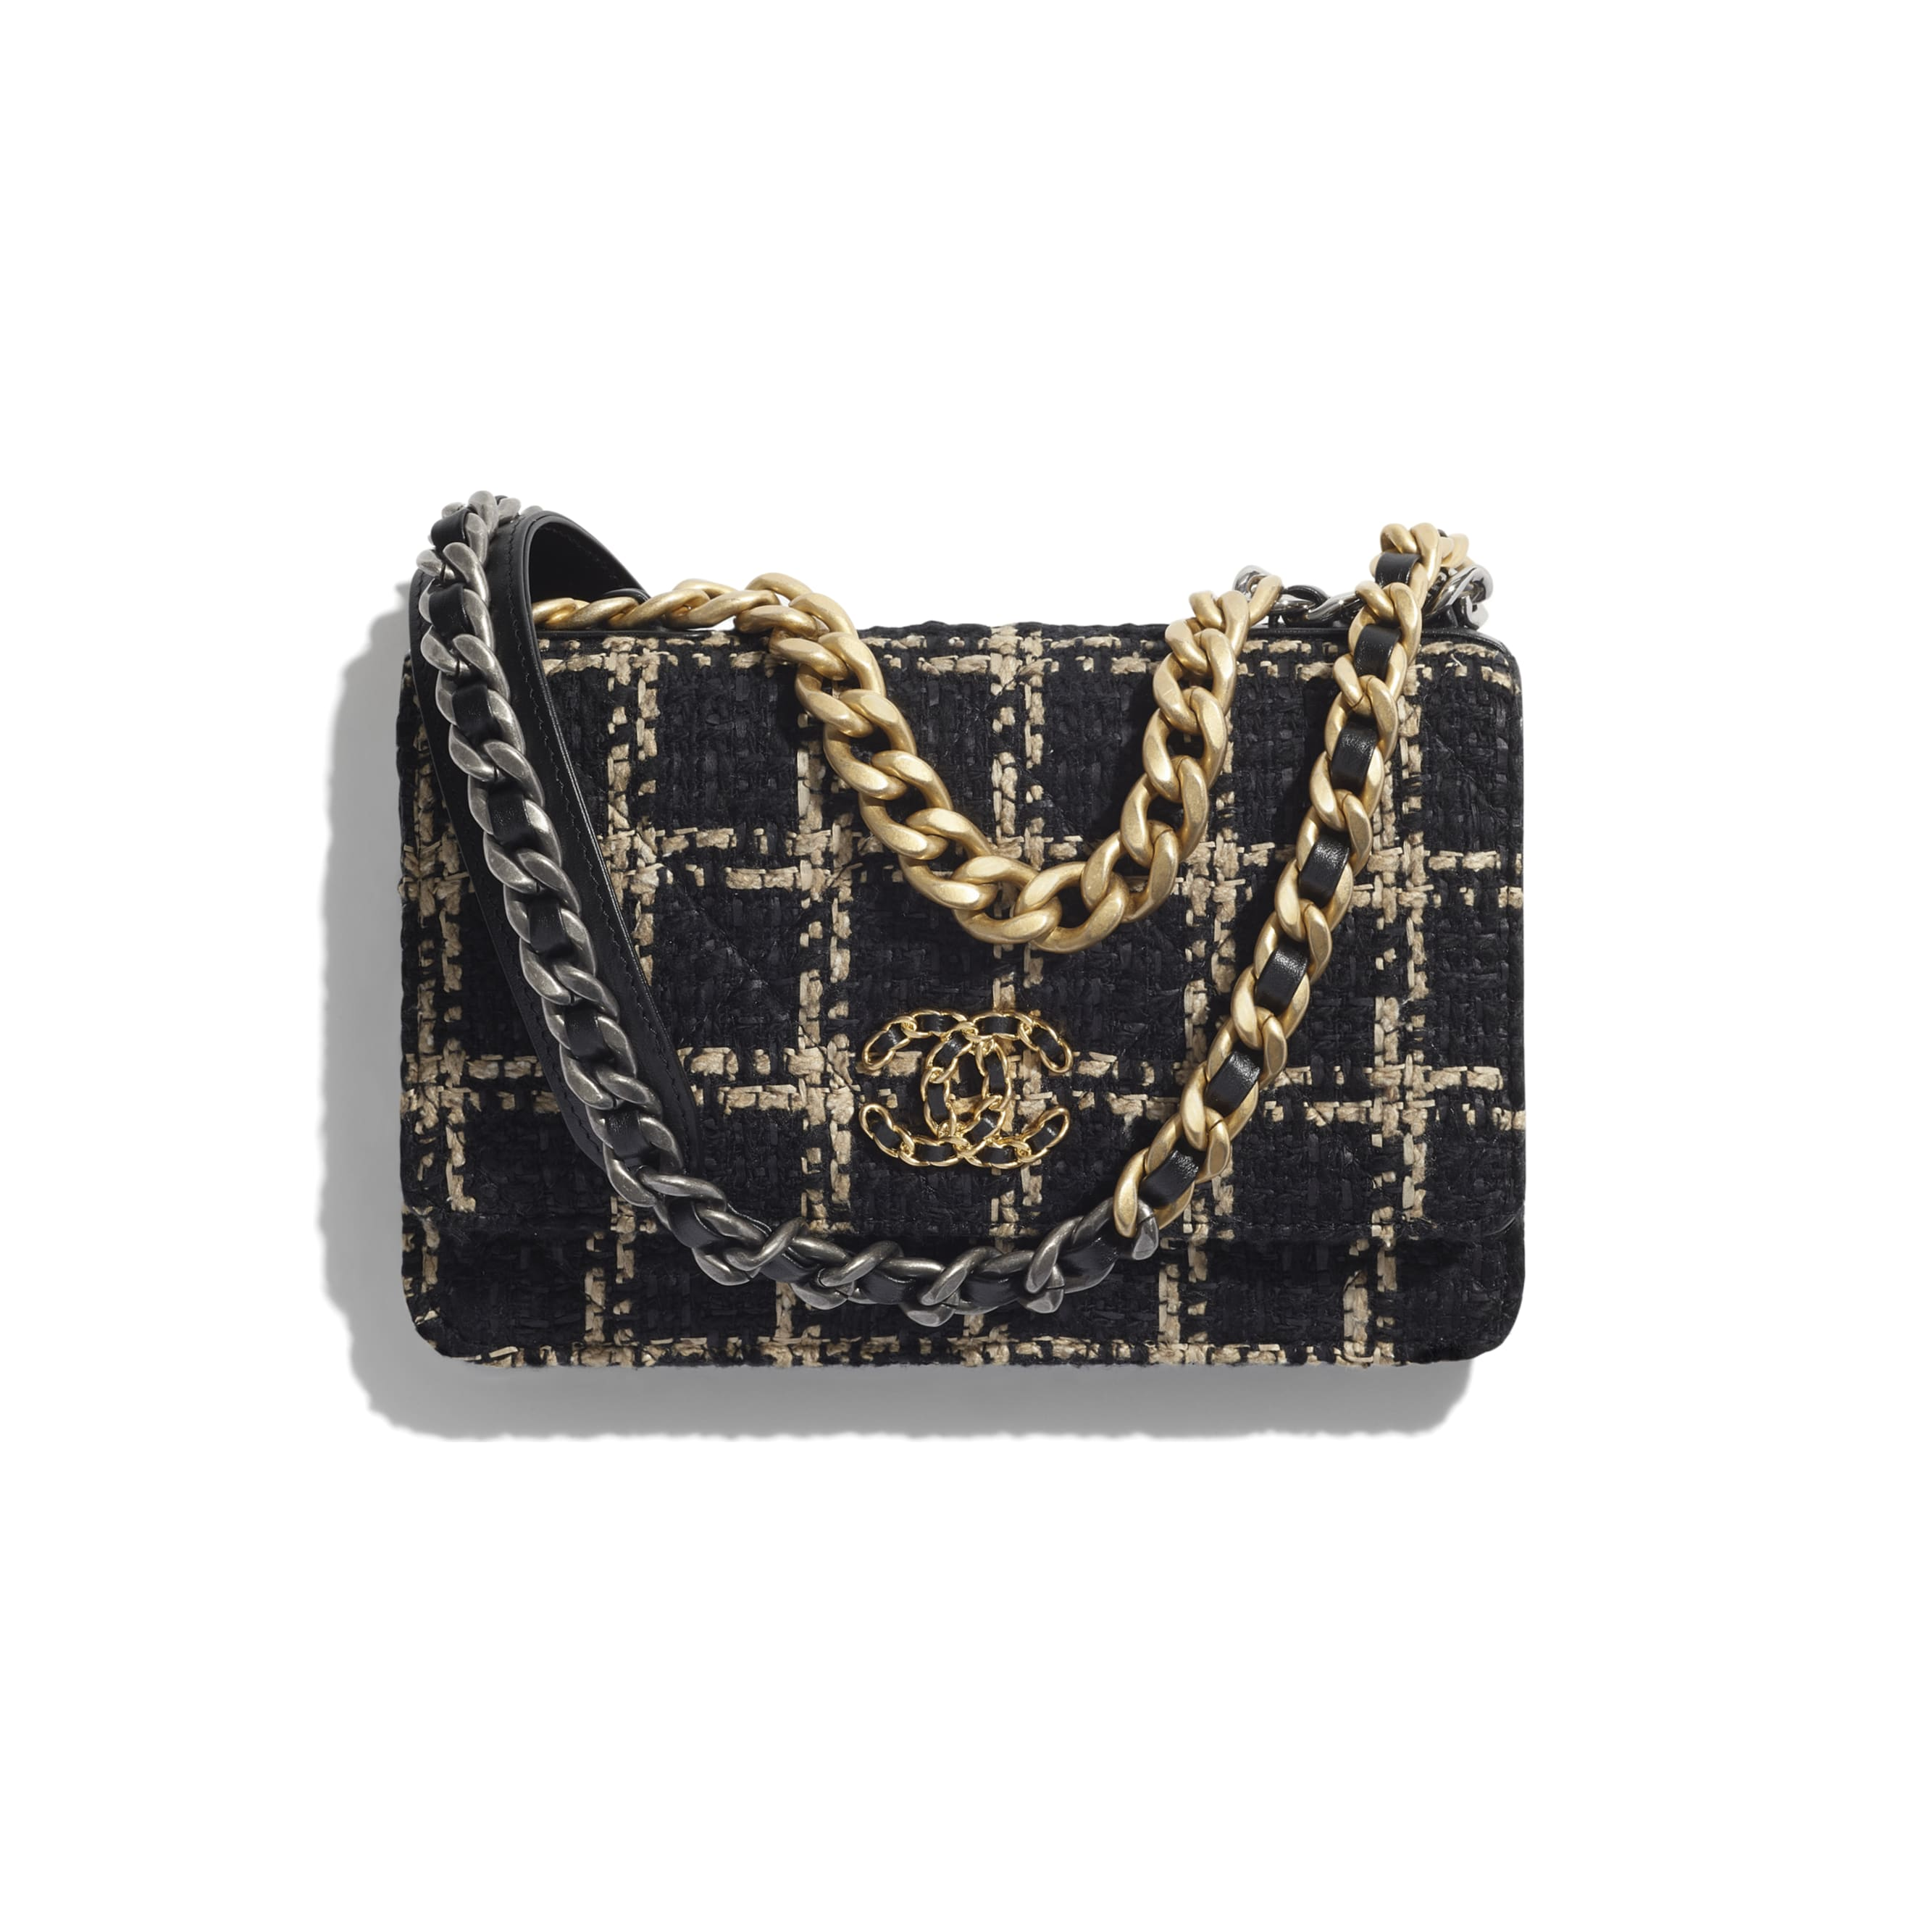 CHANEL 19 Wallet on Chain - Black & Beige - Tweed, Gold-Tone, Silver-Tone & Ruthenium-Finish Metal - CHANEL - Default view - see standard sized version